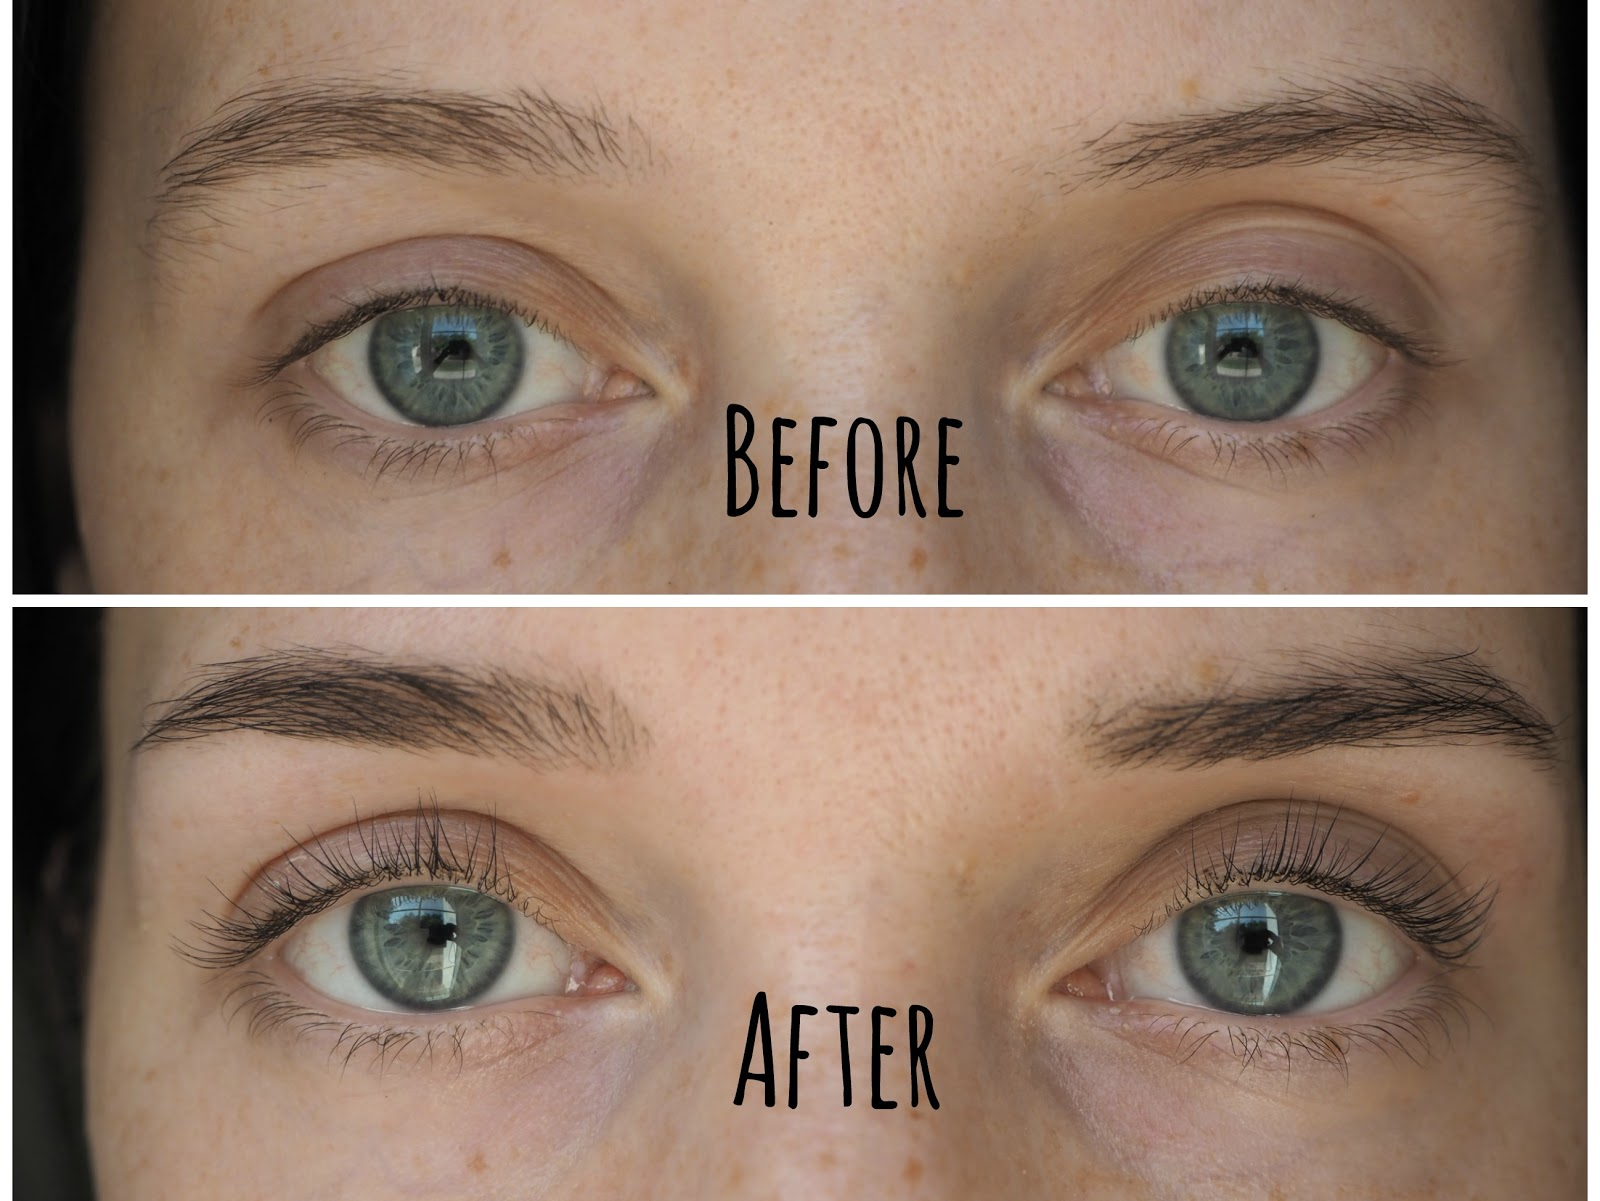 LVL Lash Lift Review - Before and After Photos, Life in Excess Blog, LVL Lashes Dubai